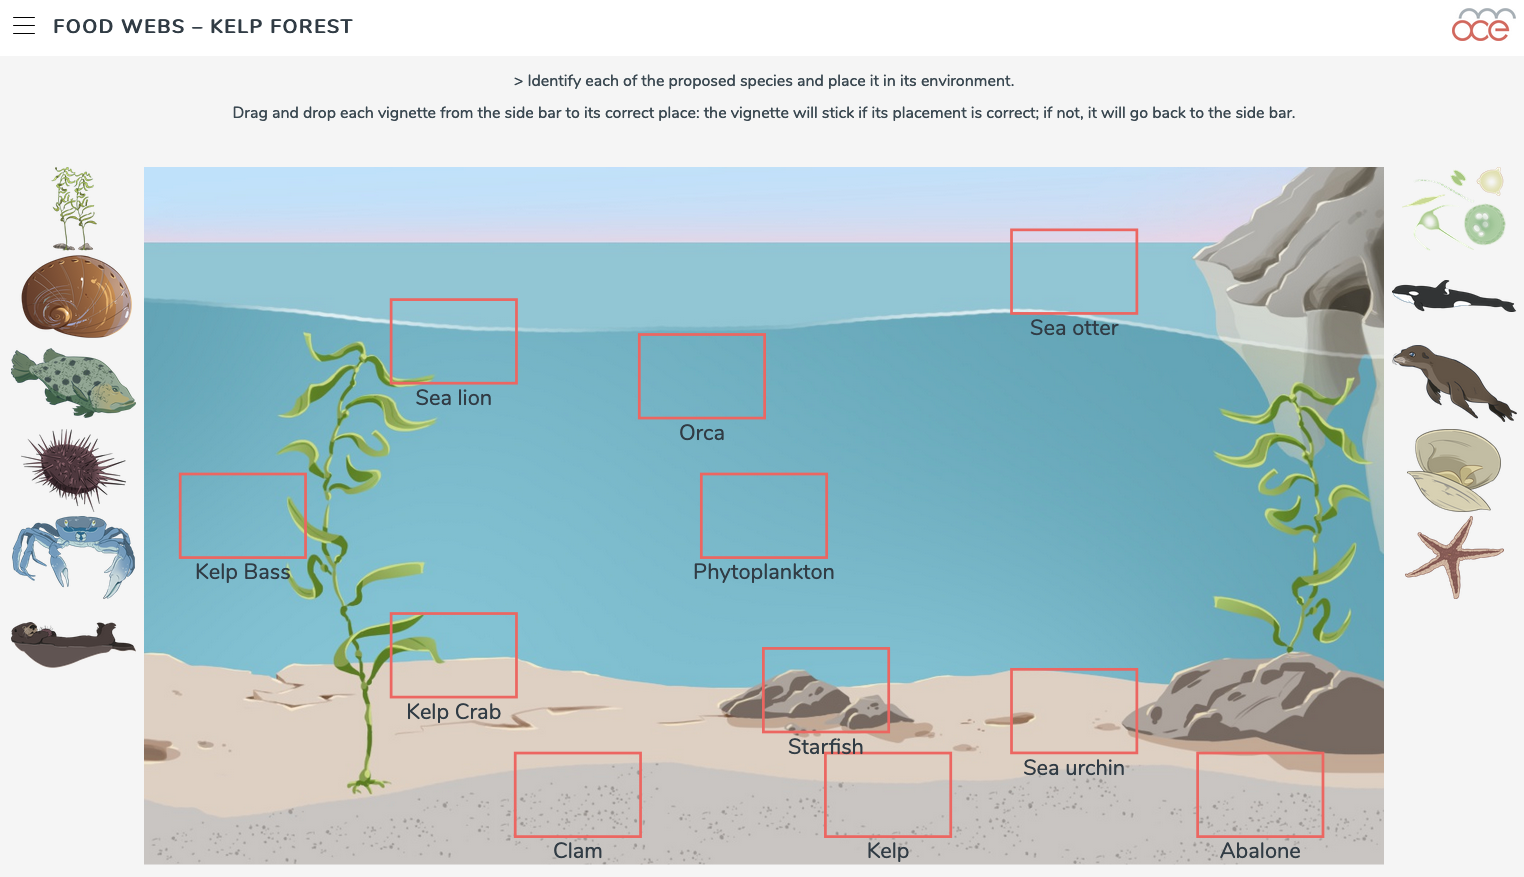 kelp forest food webs image